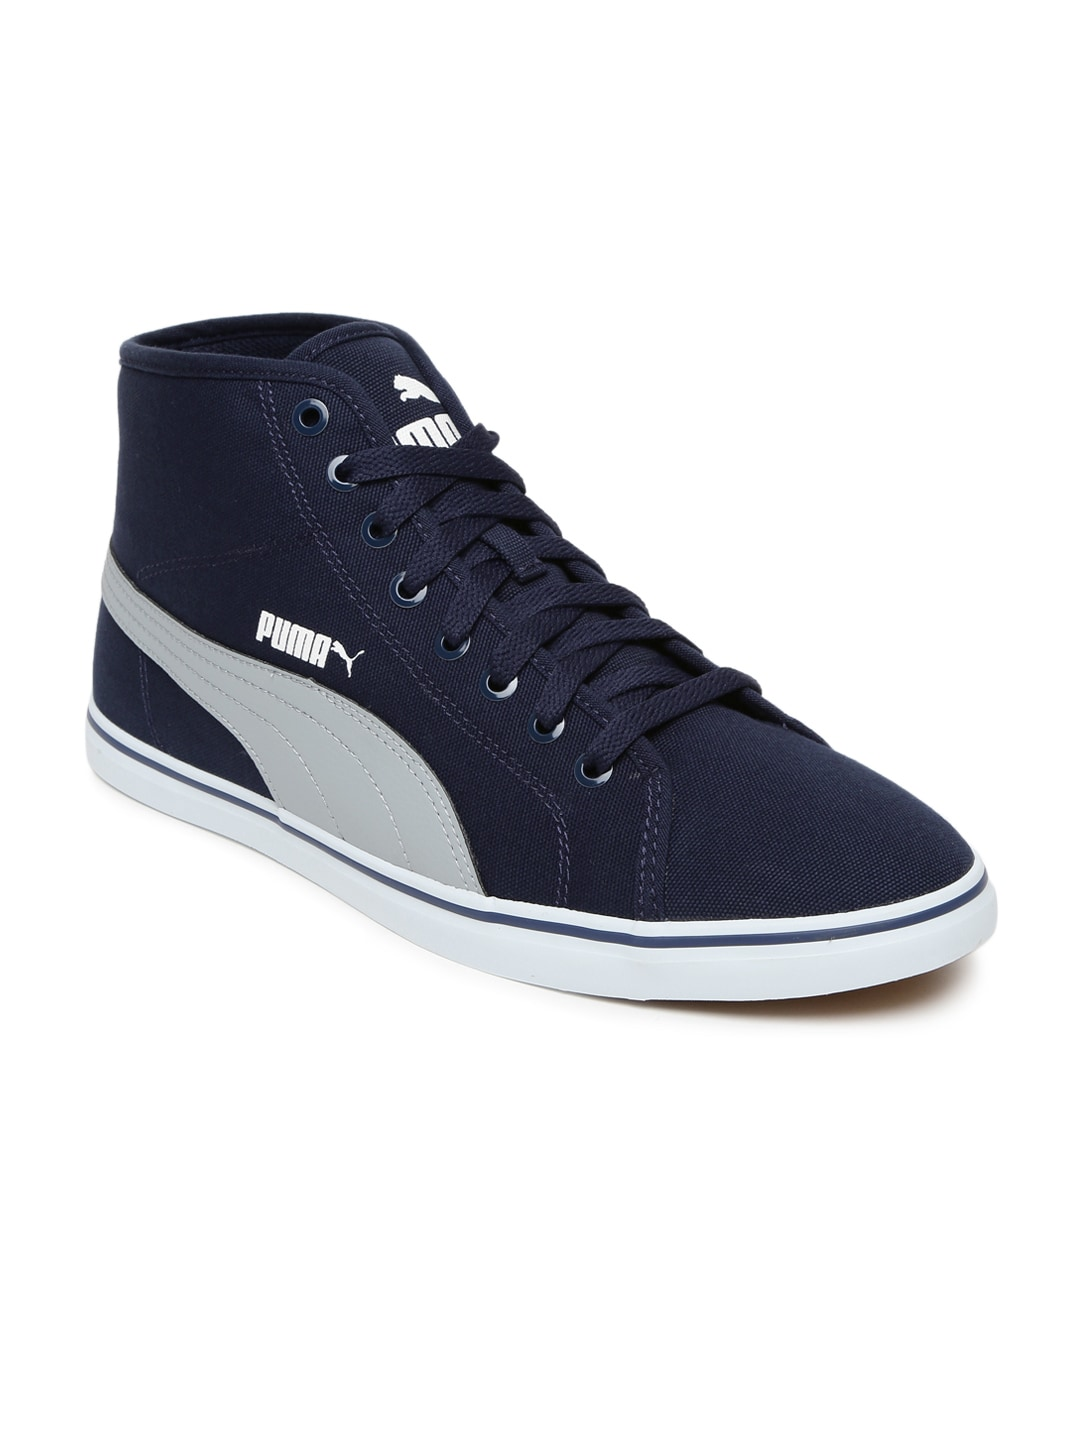 puma shoes for men high top on sale   OFF42% Discounts 9c77f3285